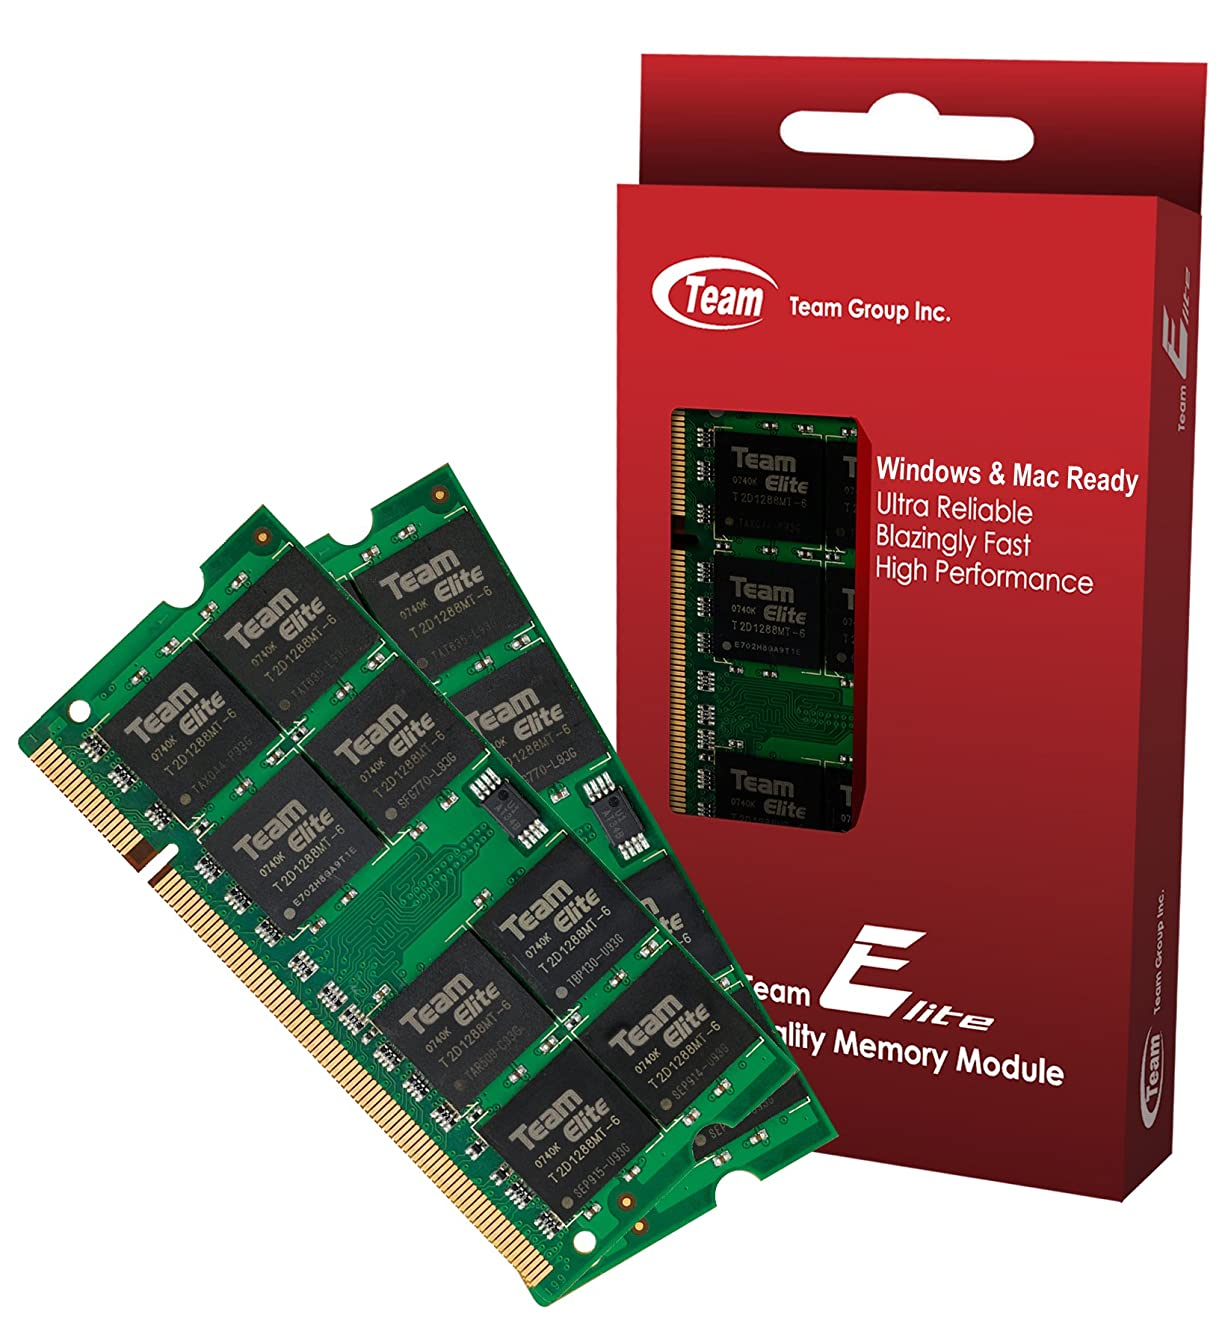 2GB (1GBx2) Team High Performance Memory RAM Upgrade For Fujitsu Amilo D 7820 Laptop. The Memory Kit comes with Life Time Warranty.